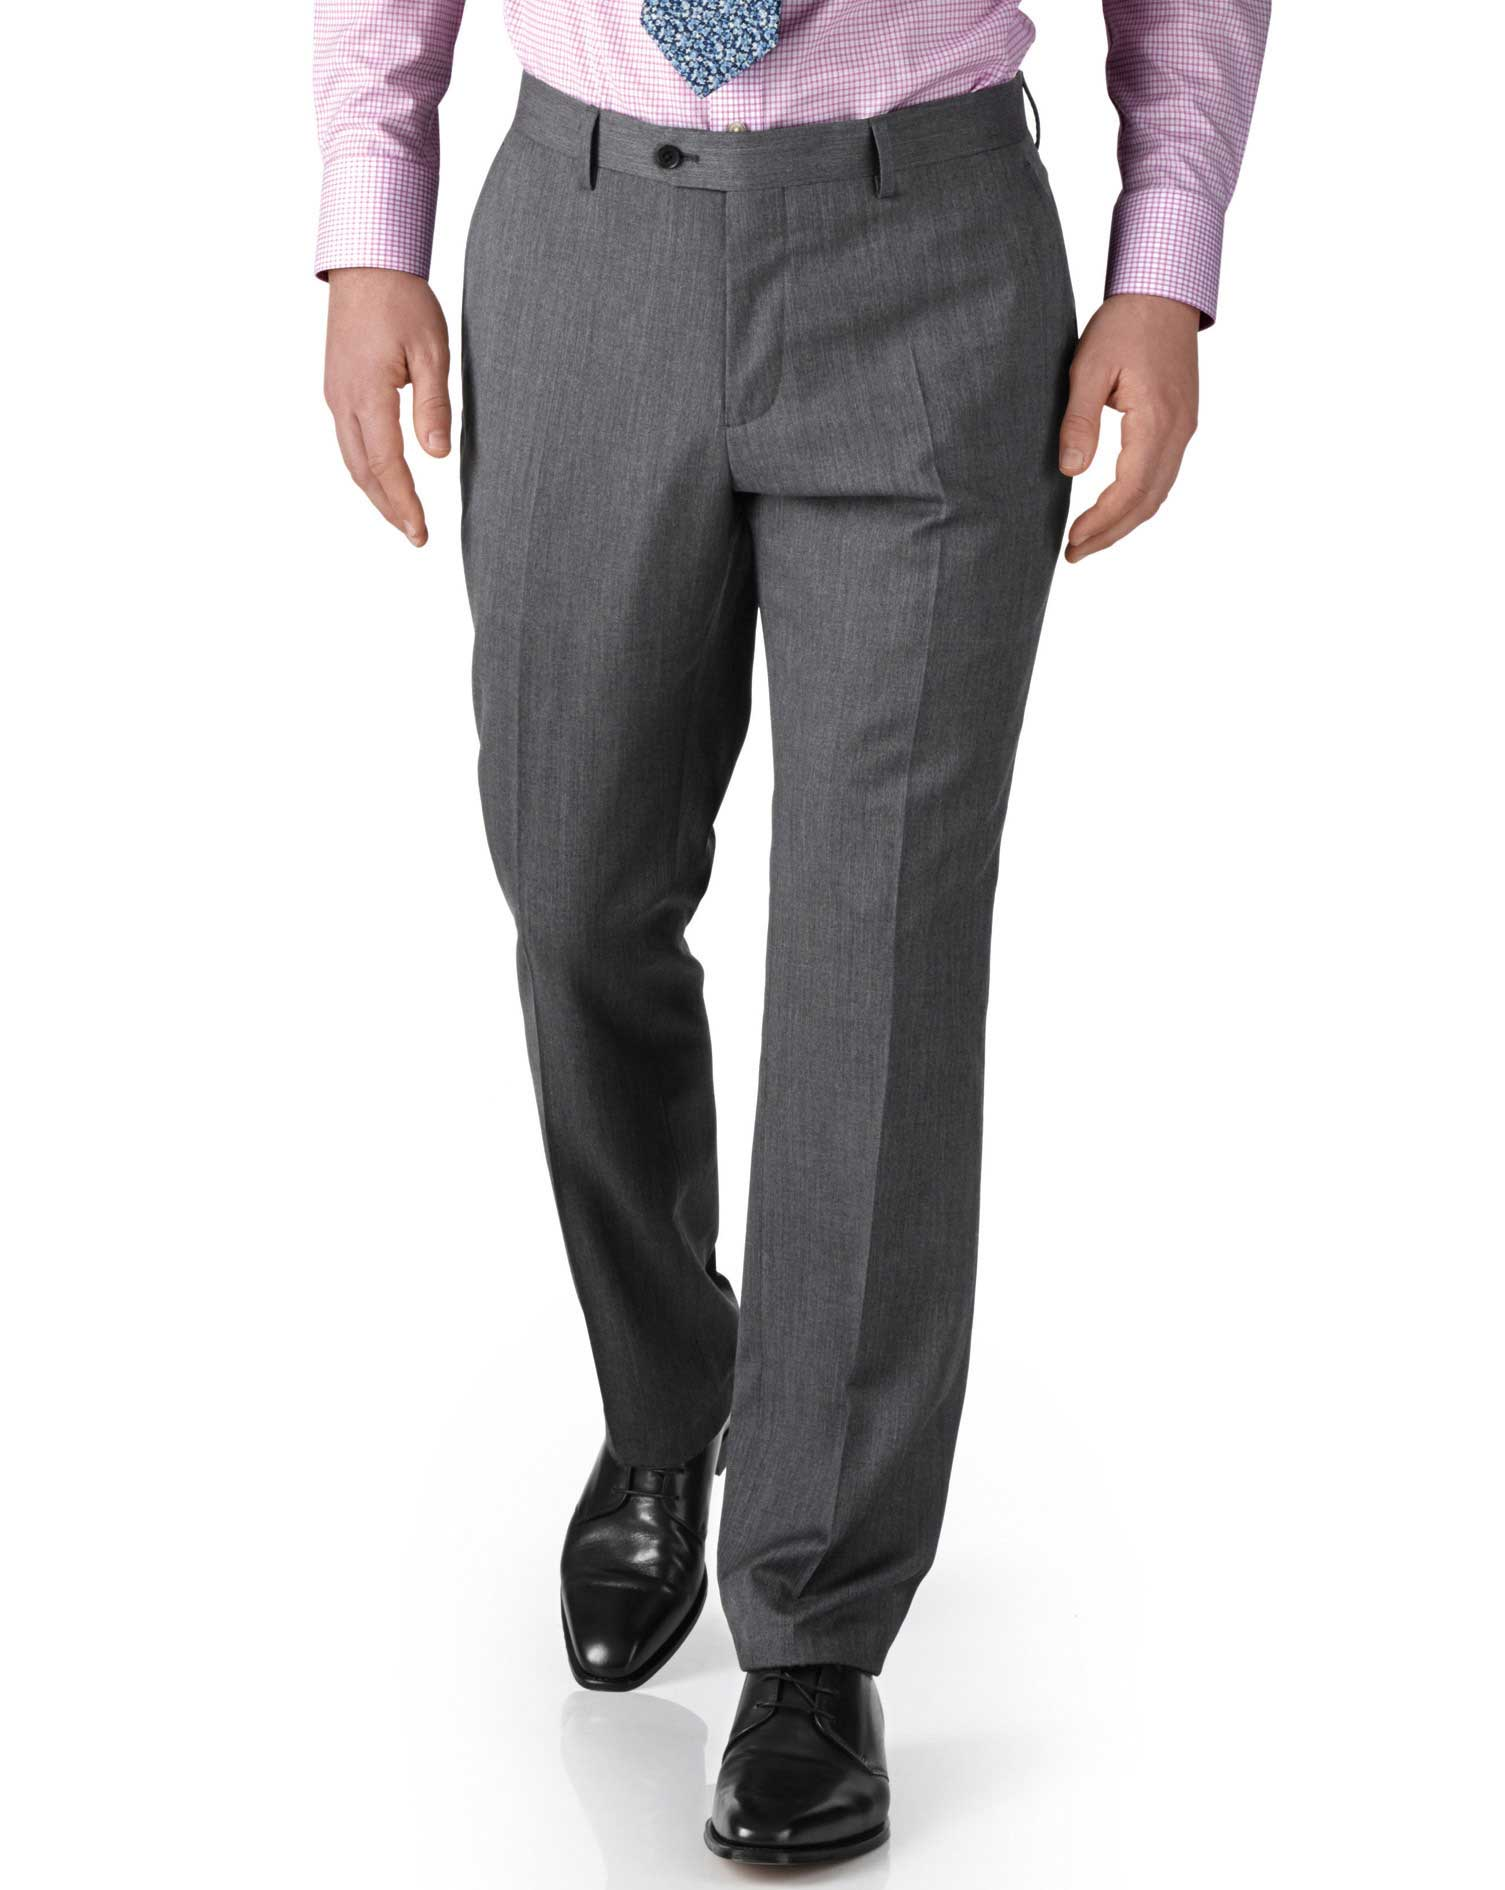 Silver Slim Fit Twill Business Suit Trousers Size W42 L38 by Charles Tyrwhitt